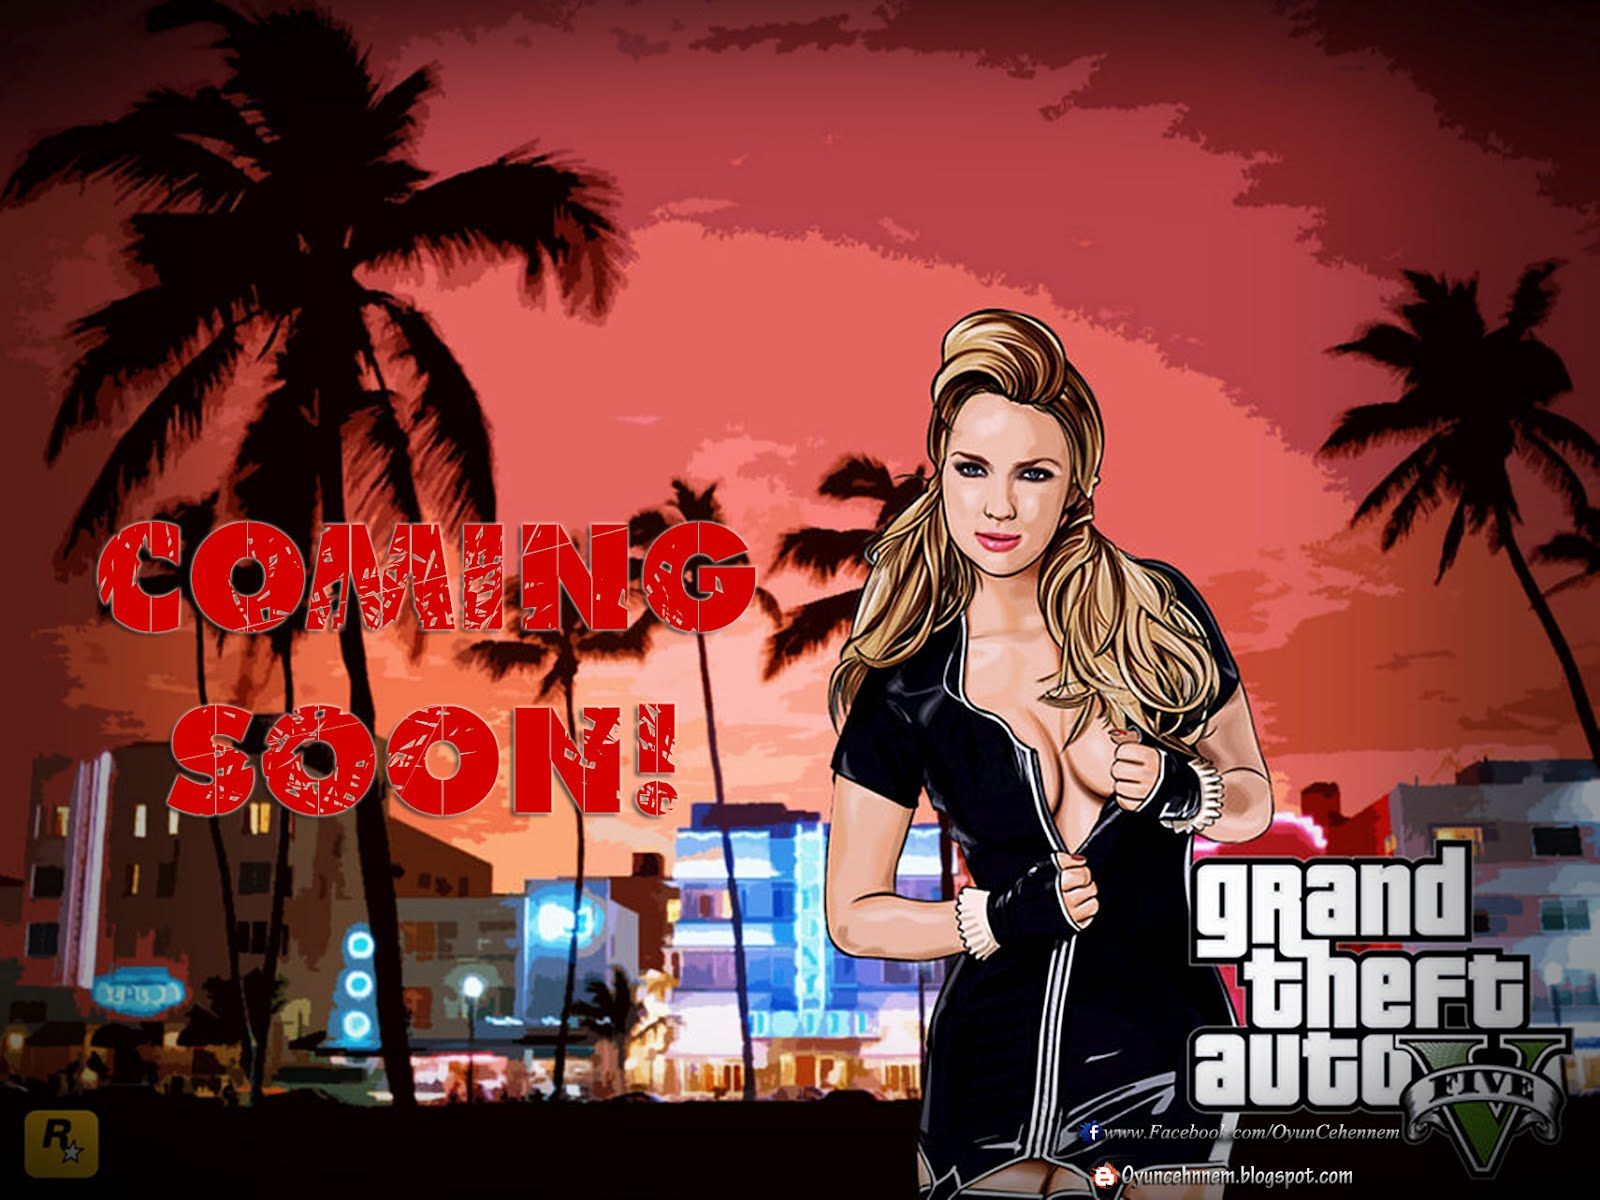 Gta 5 Girl Wallpaper Wallpapersafari